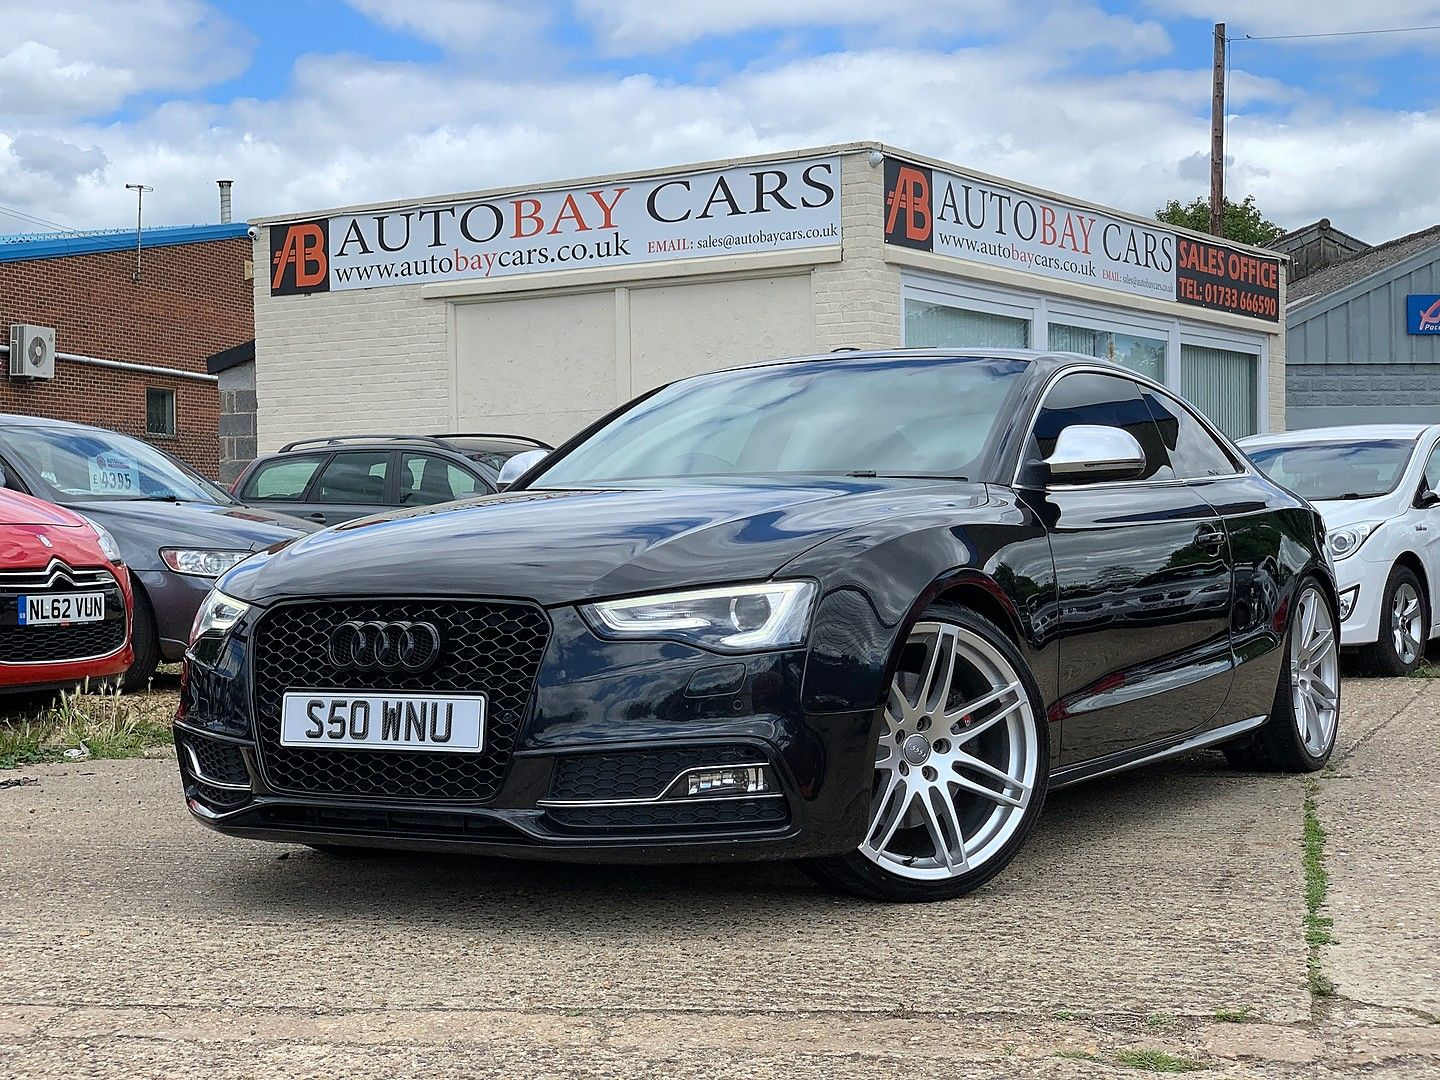 AUDIS5S5 V8 QUATTRO for sale